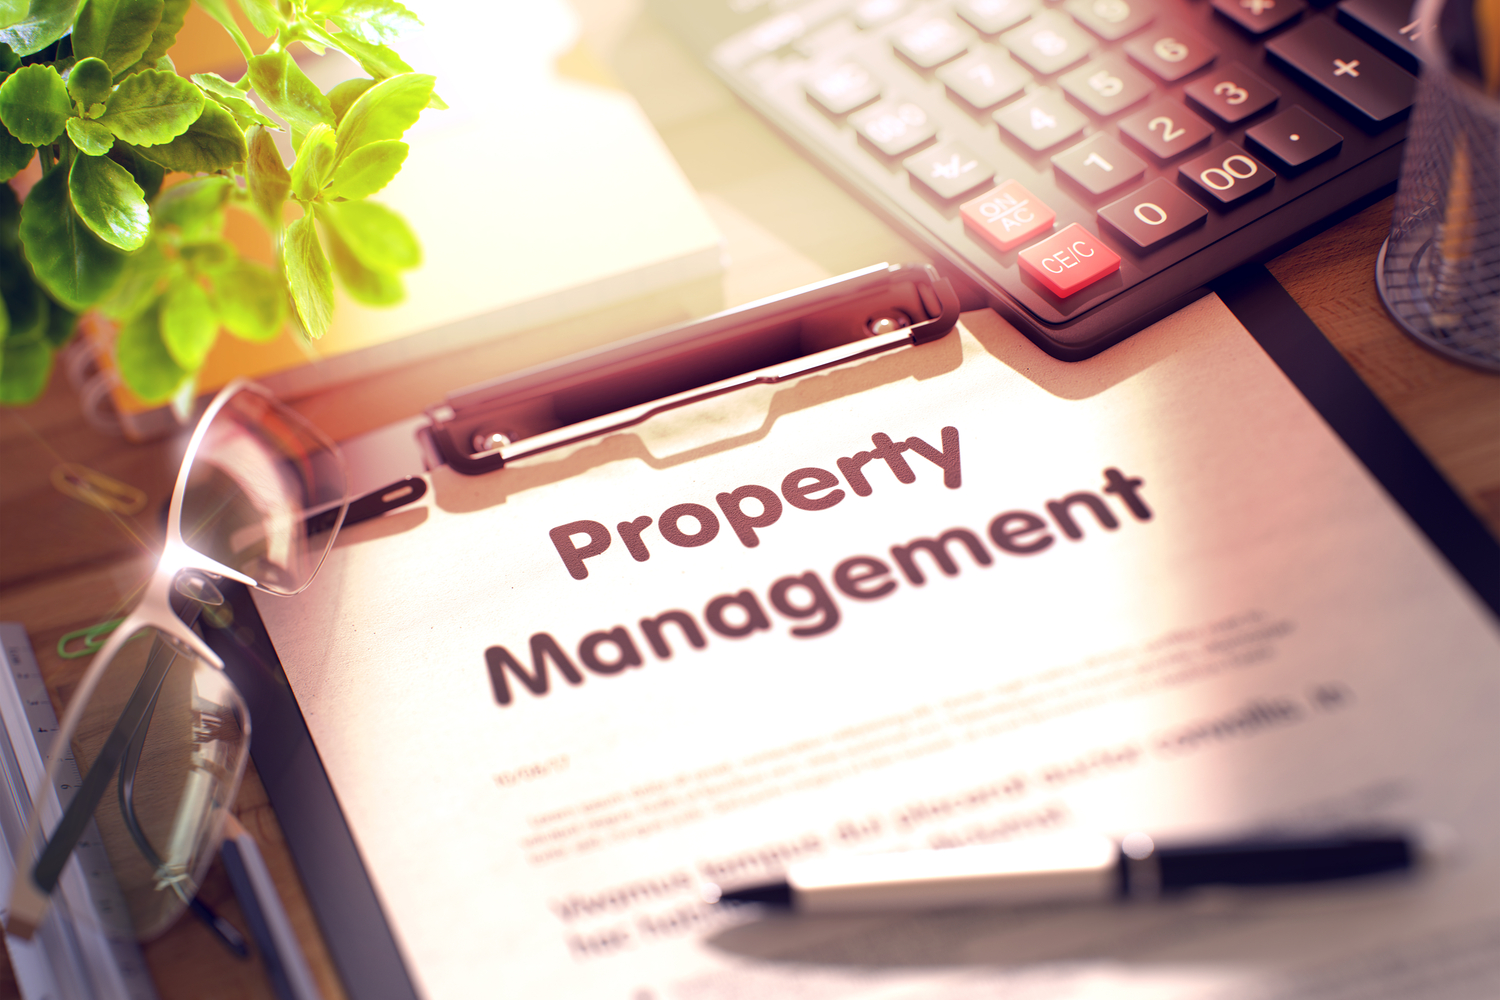 Property management system: come ottenerlo con Beesprint